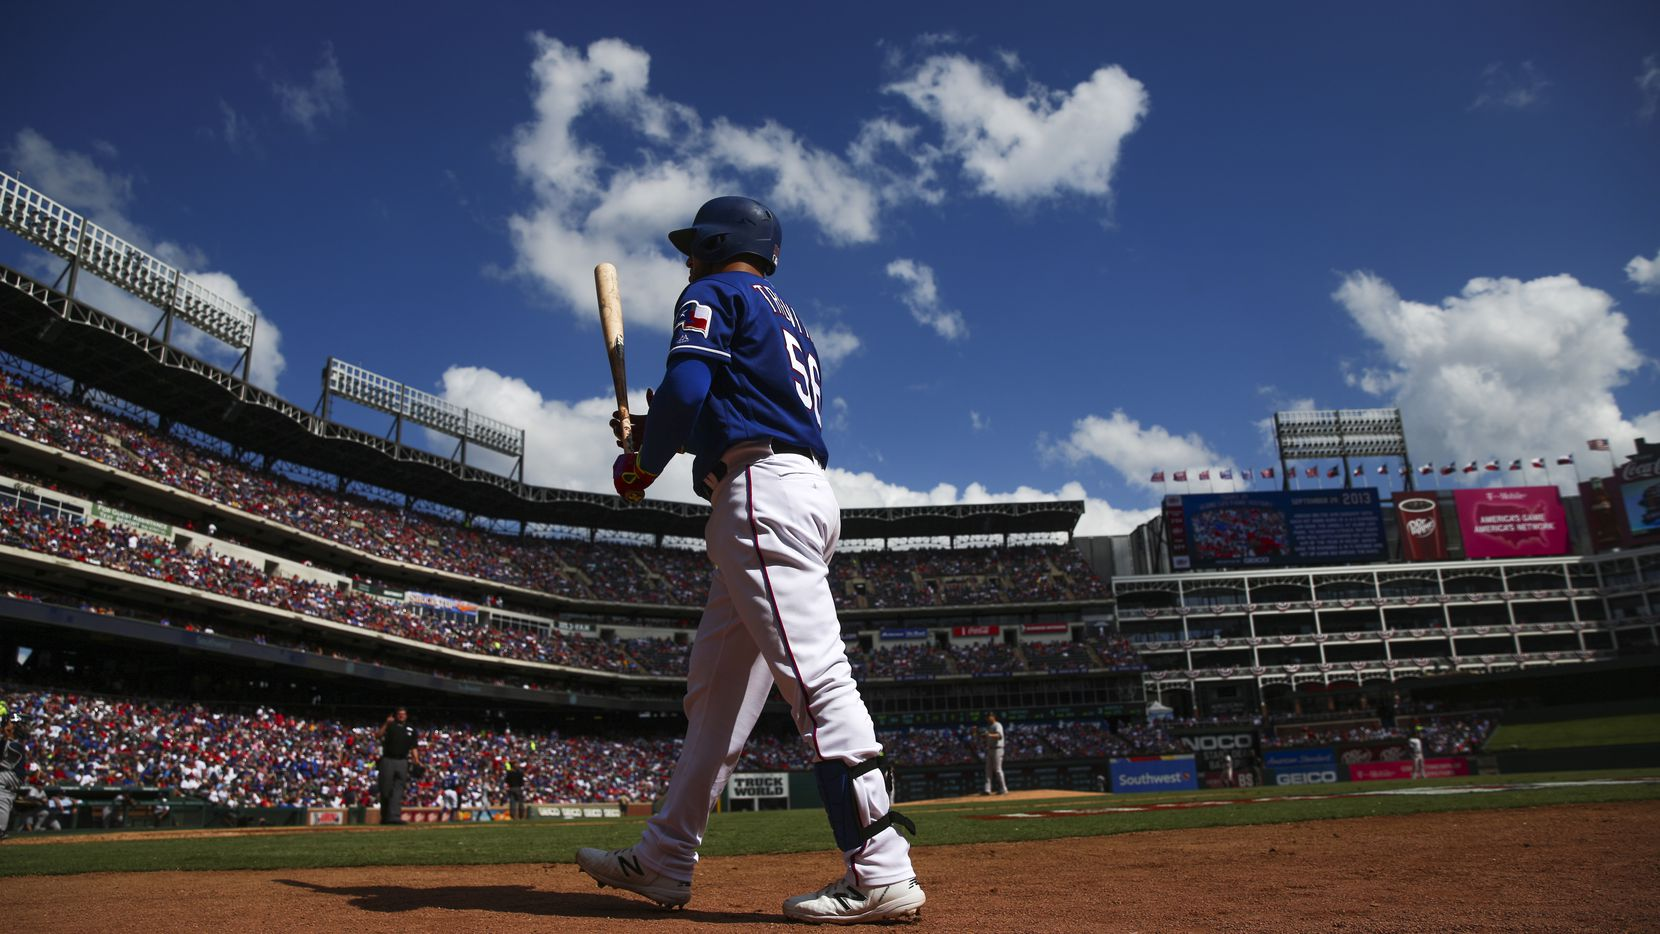 Texas Rangers catcher Jose Trevino (56) walks up to bat during a MLB game between Texas Rangers and New York Yankees on Sunday, September 29, 2019 at Globe Life Park in Arlington, Texas. (Shaban Athuman/Staff Photographer)